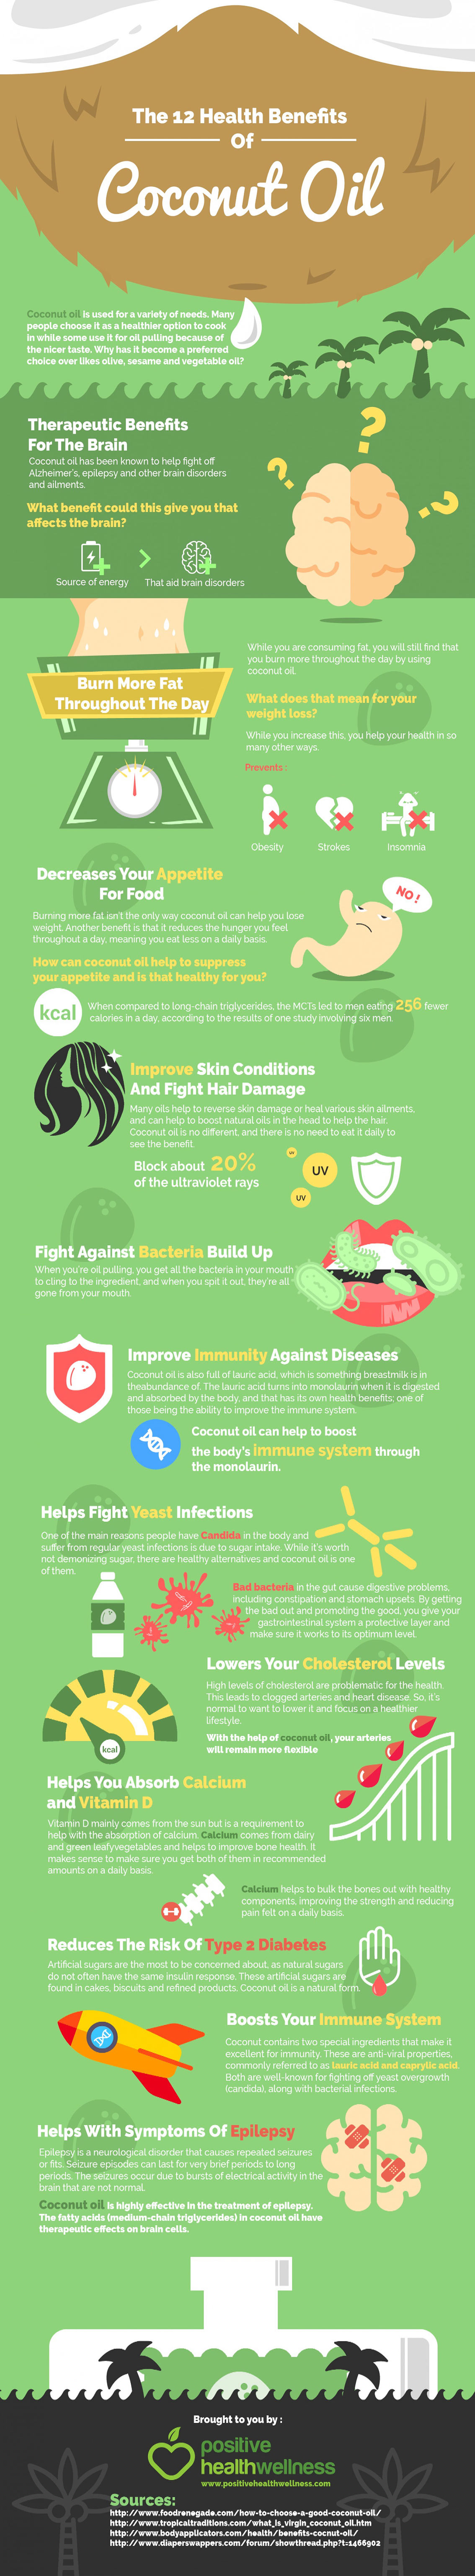 Health Benefits of Coconut Oil Infographic